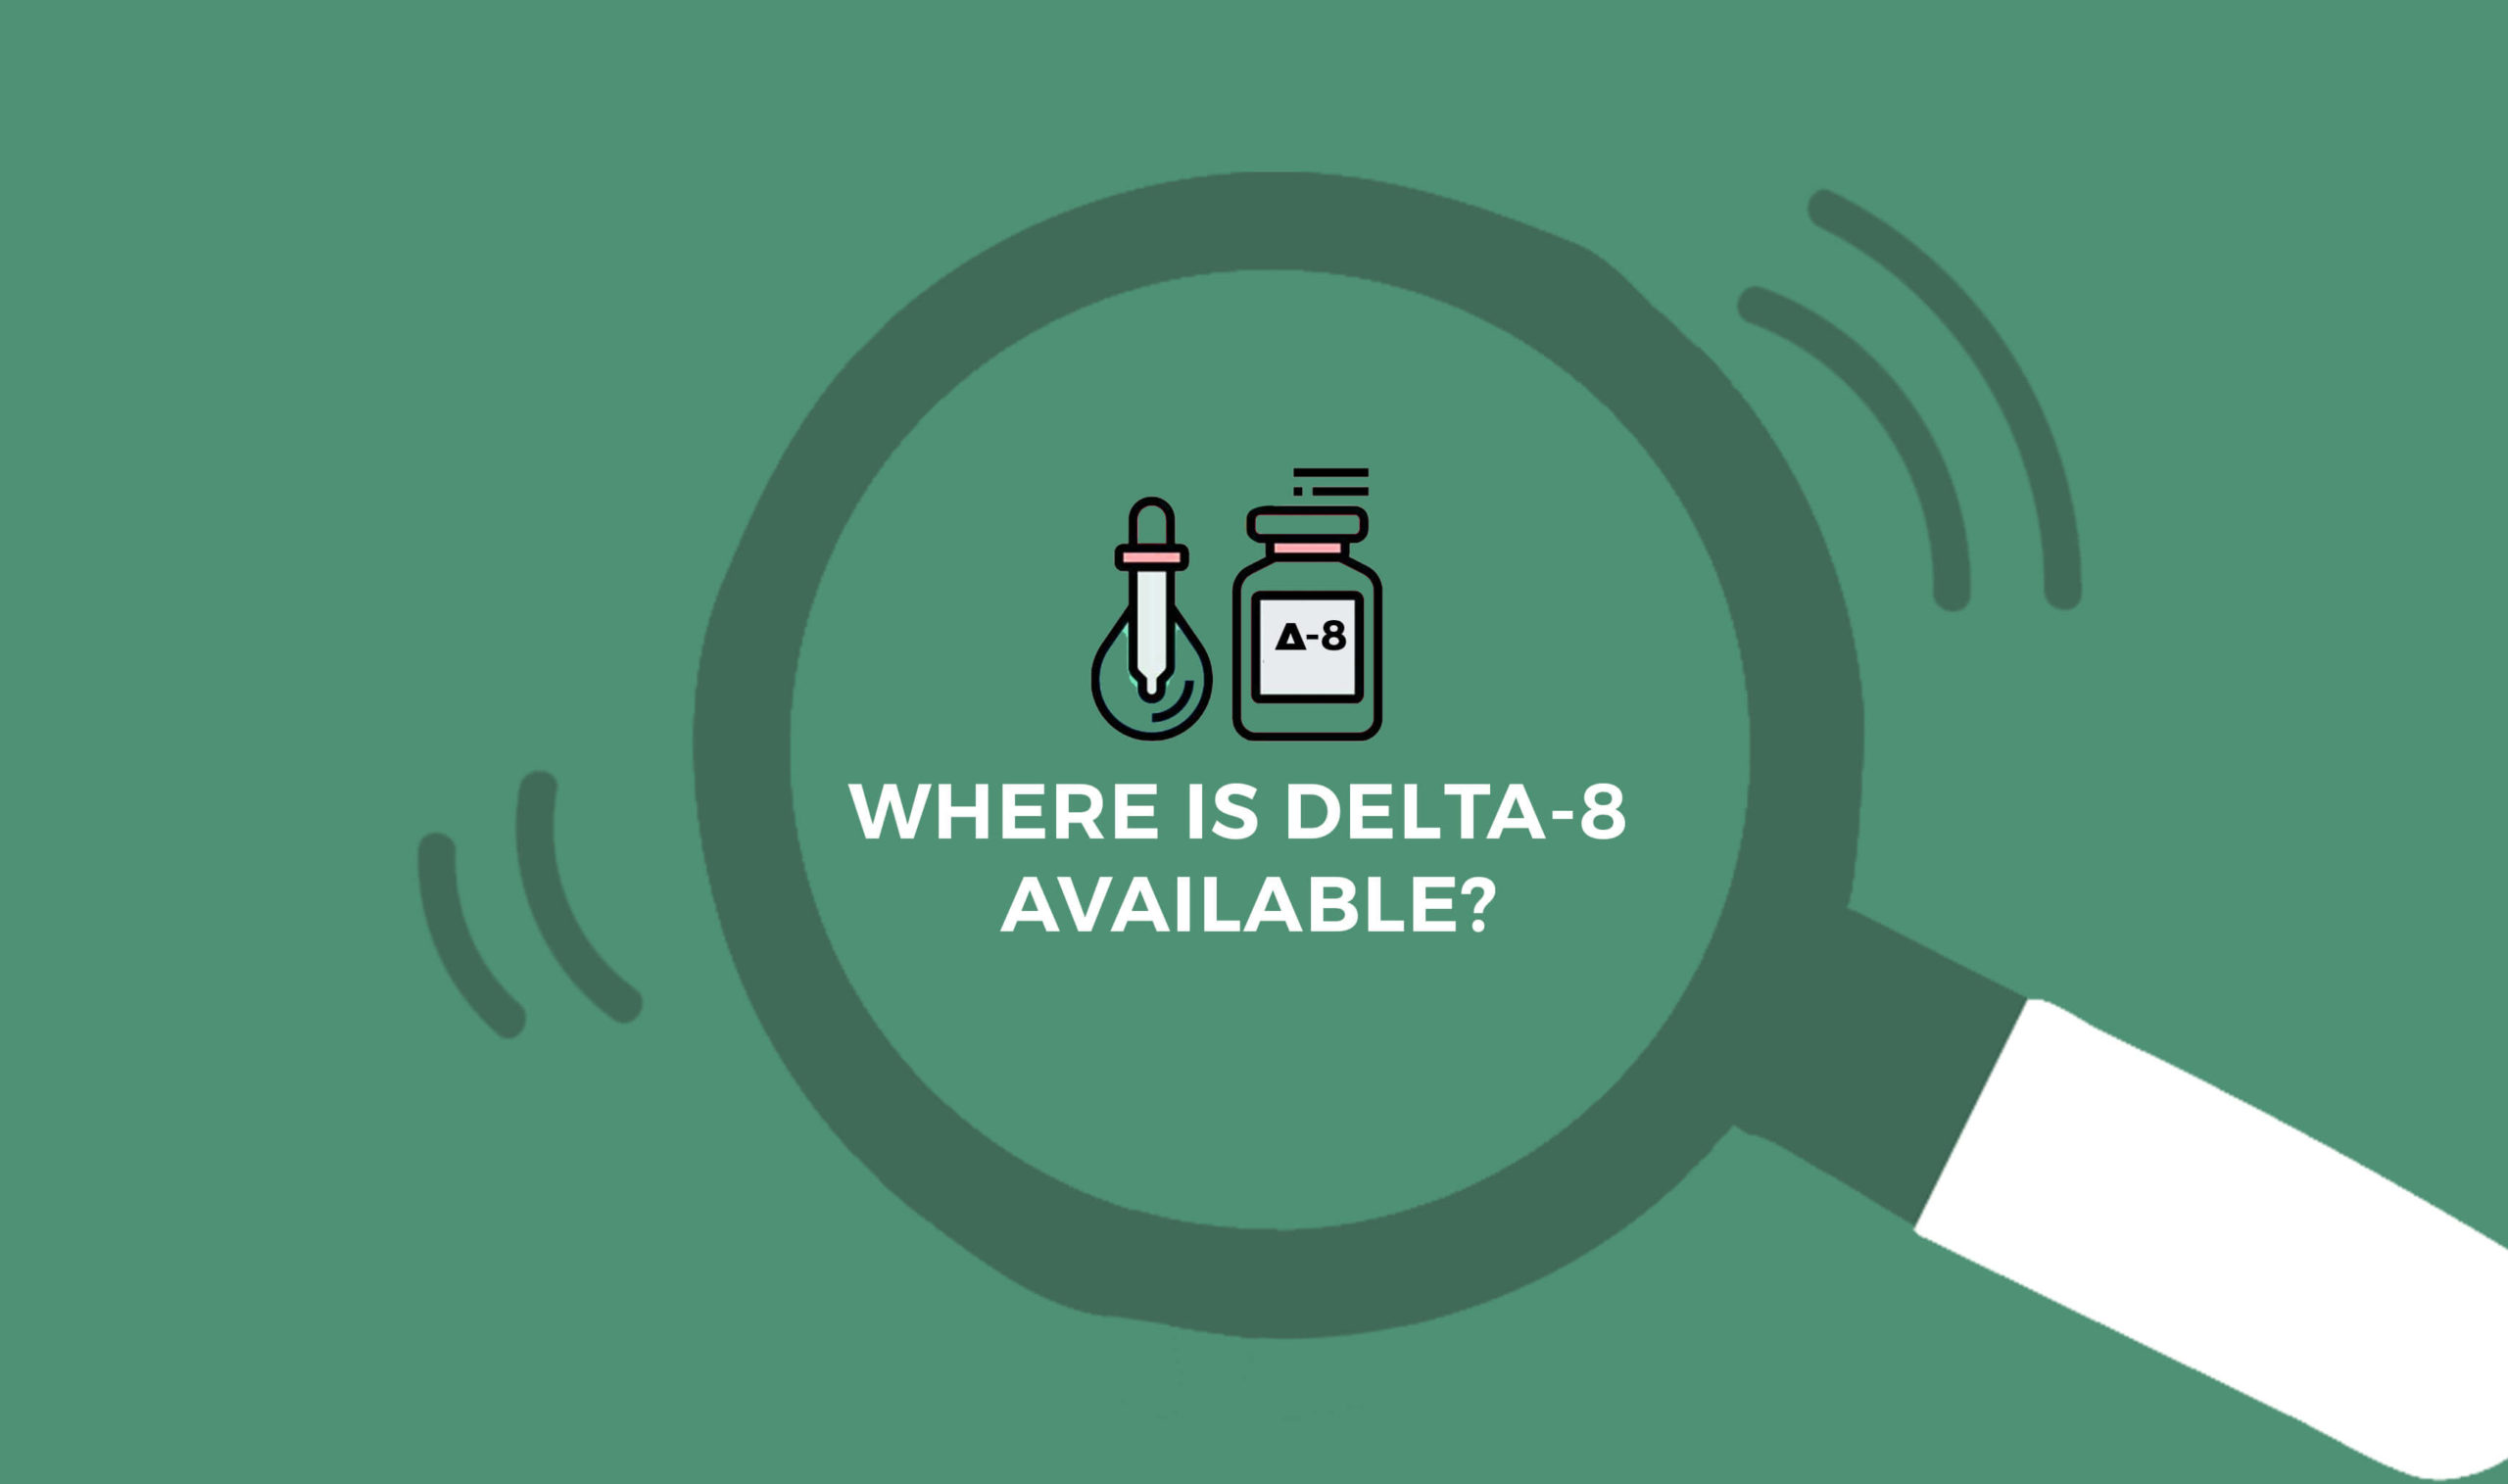 Where Is Delta-8 Available